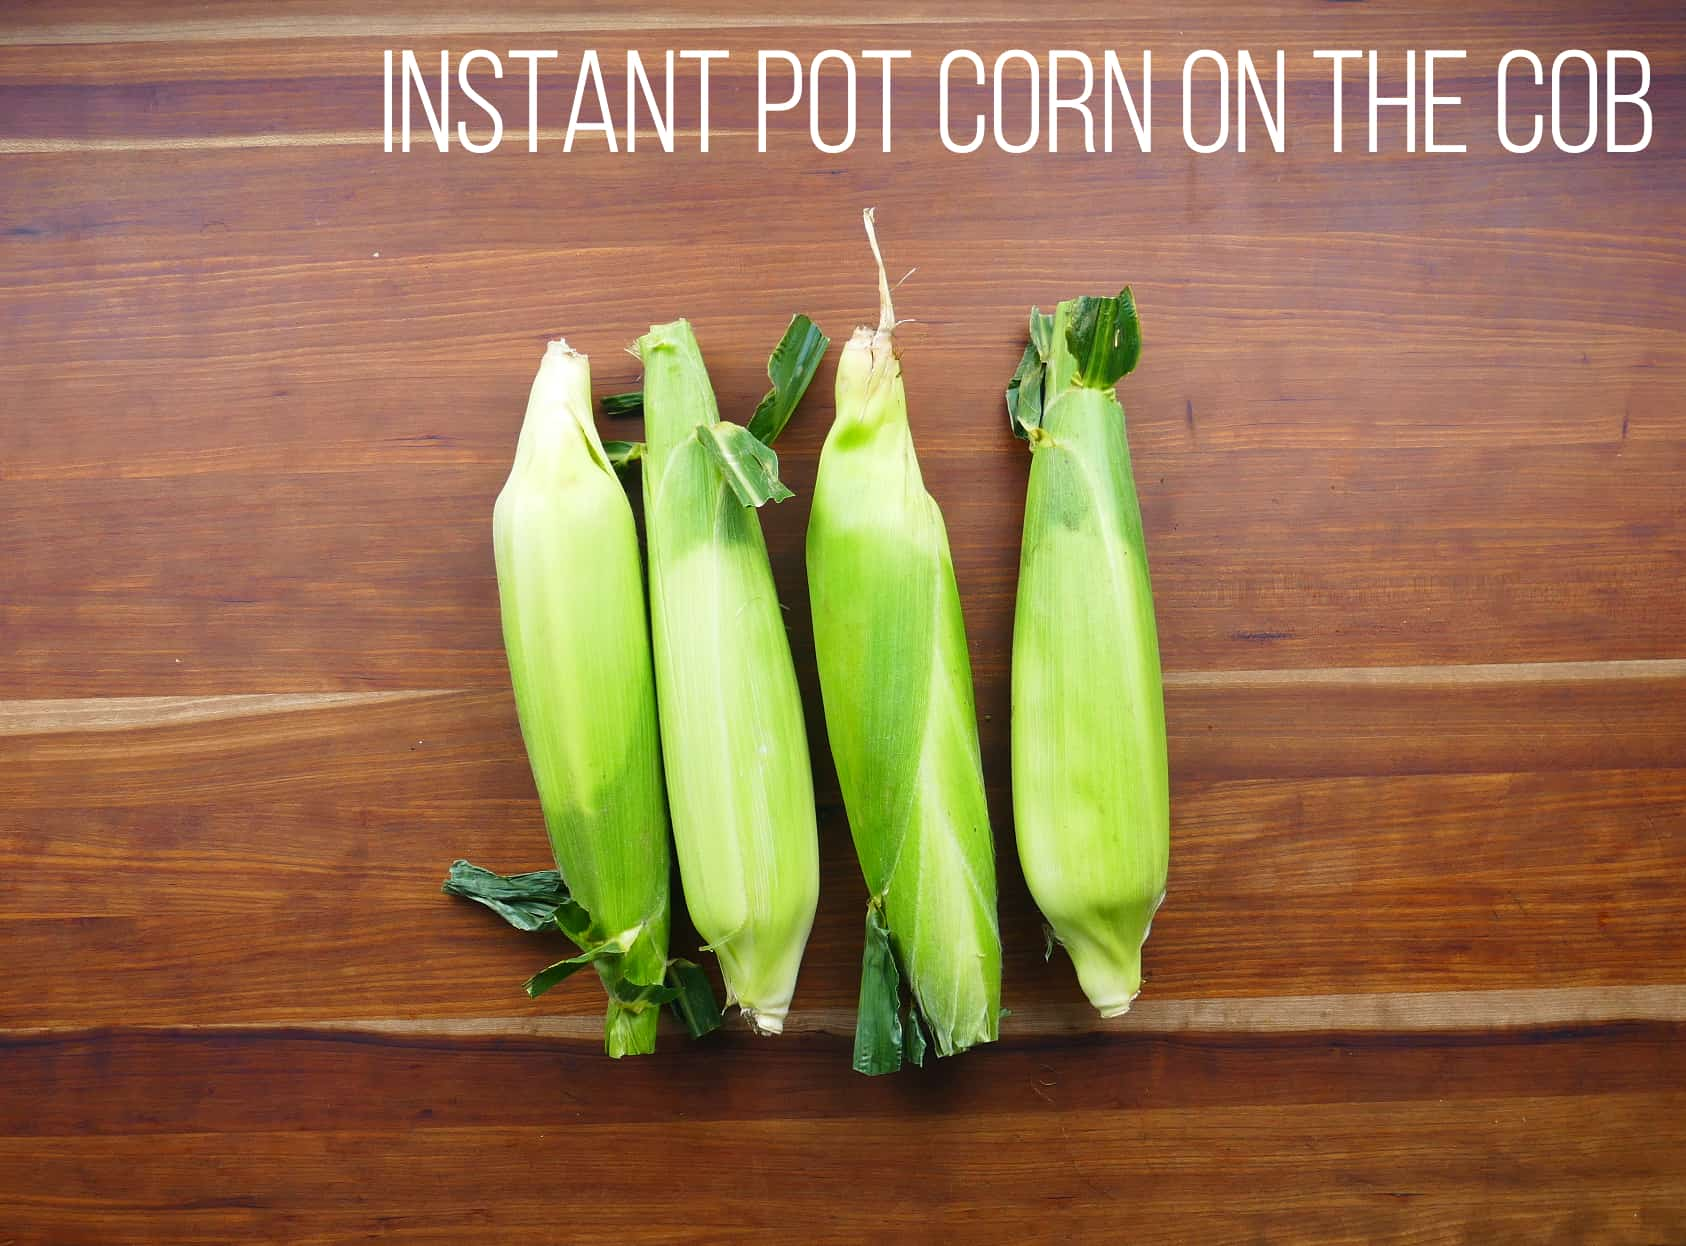 Instant Pot corn on the cob - four ears of corn in husk